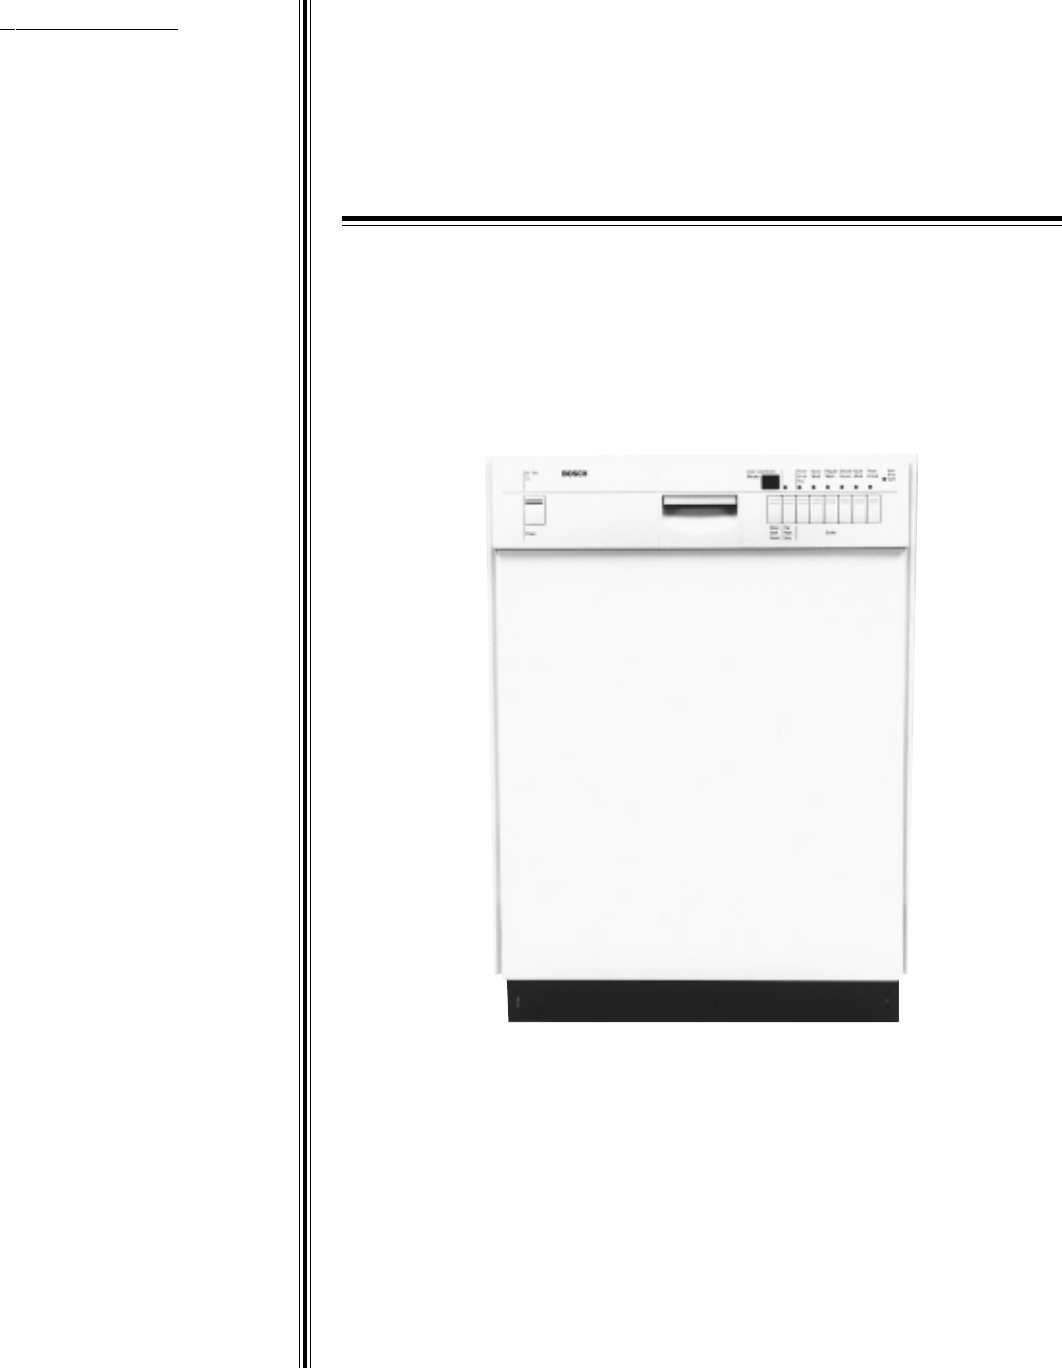 Bosch Appliances Dishwasher 4302 User Guide